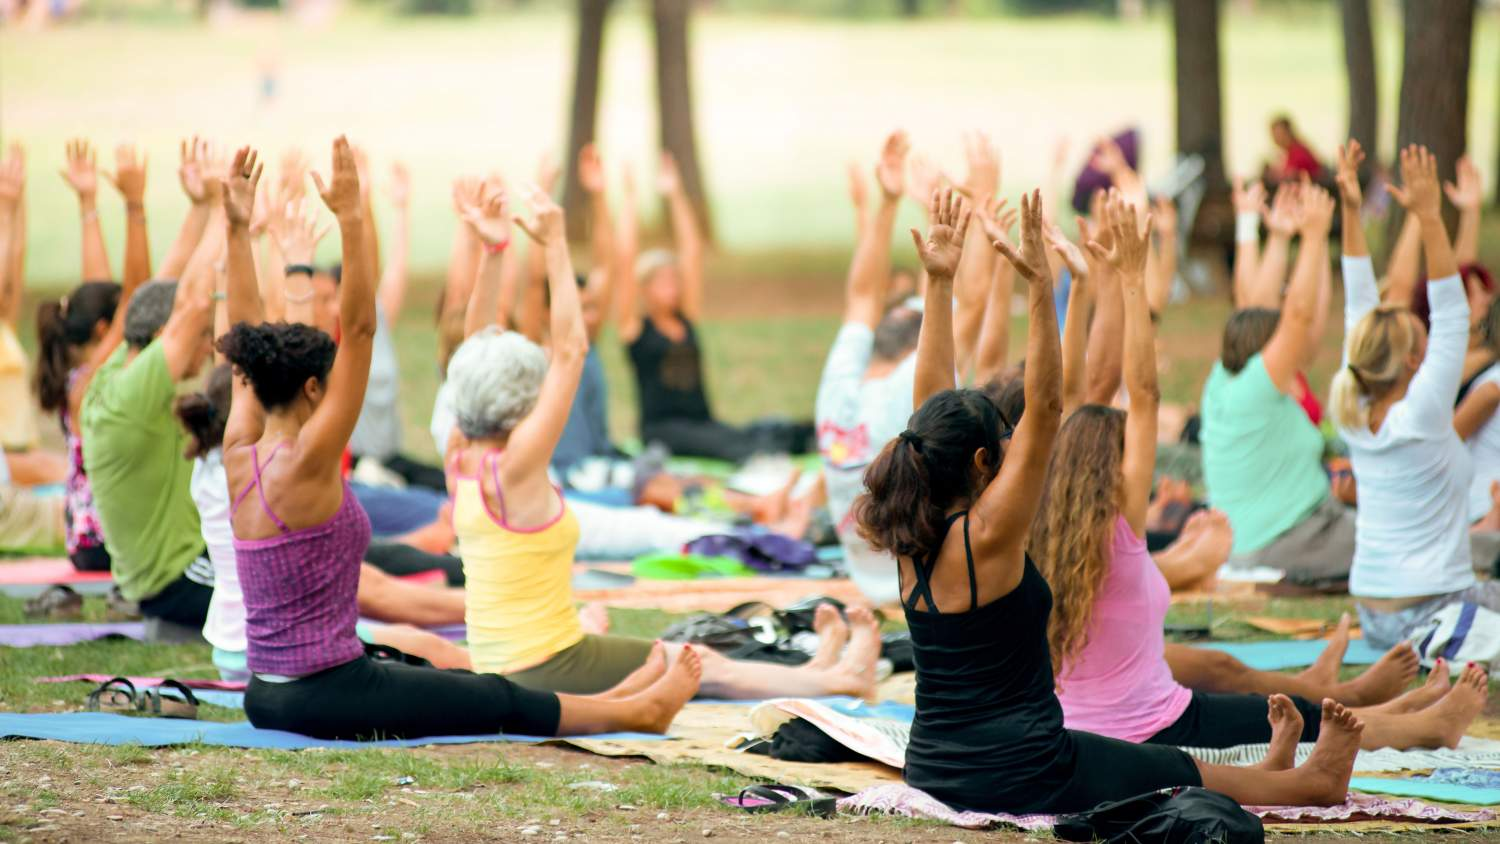 People practicing yoga in the park